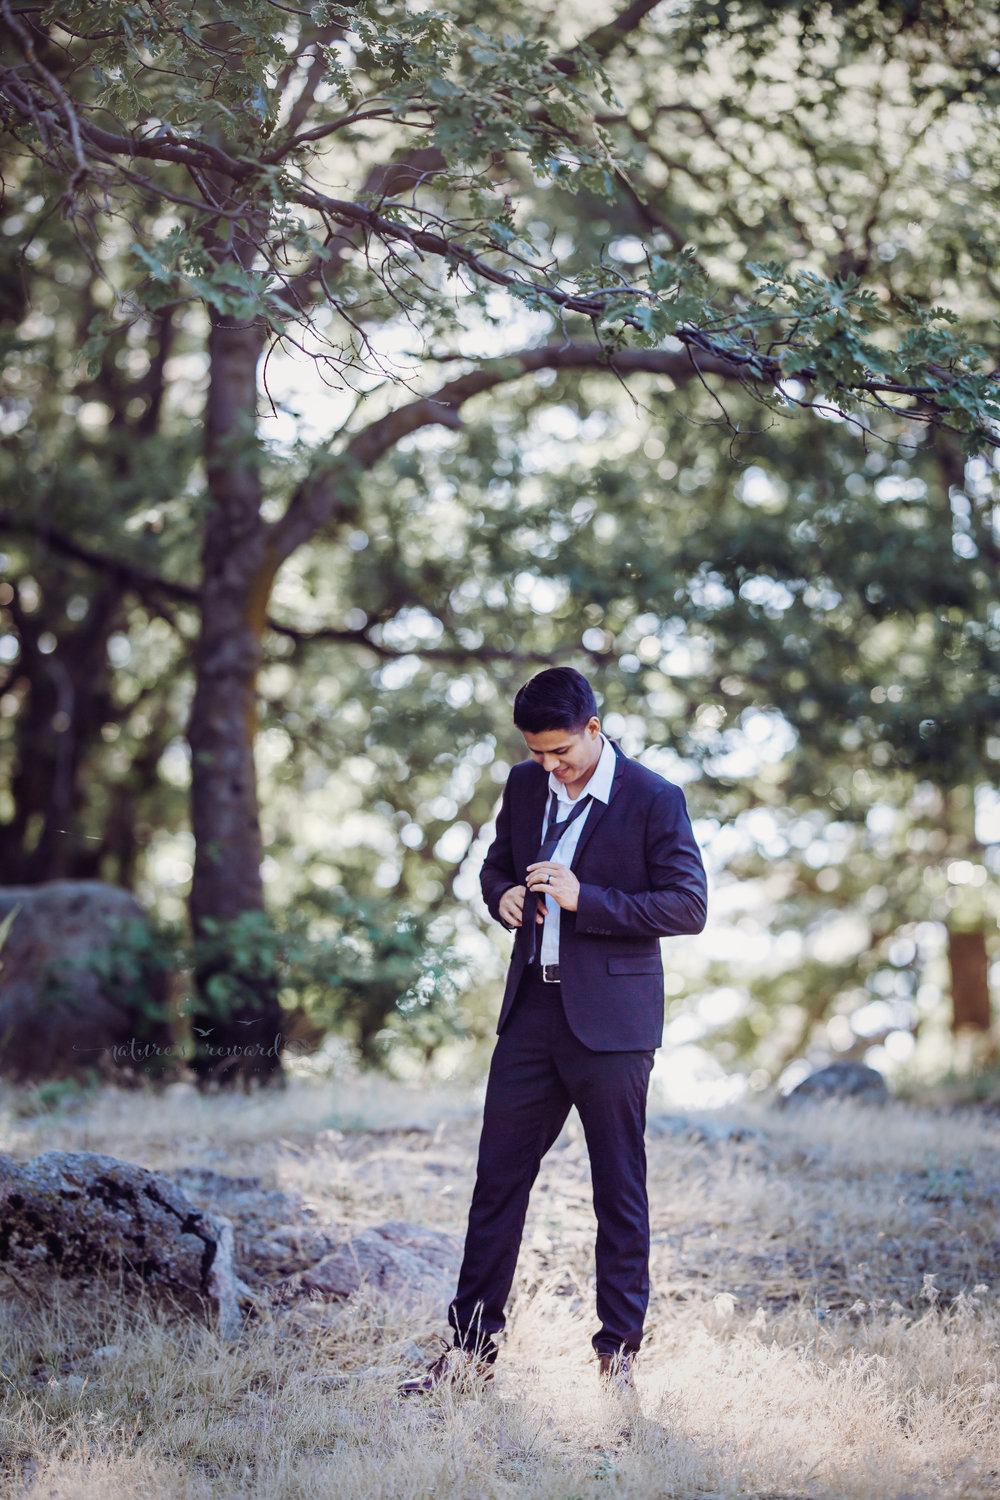 the groom getting ready- a portrait by Nature's Reward Photography